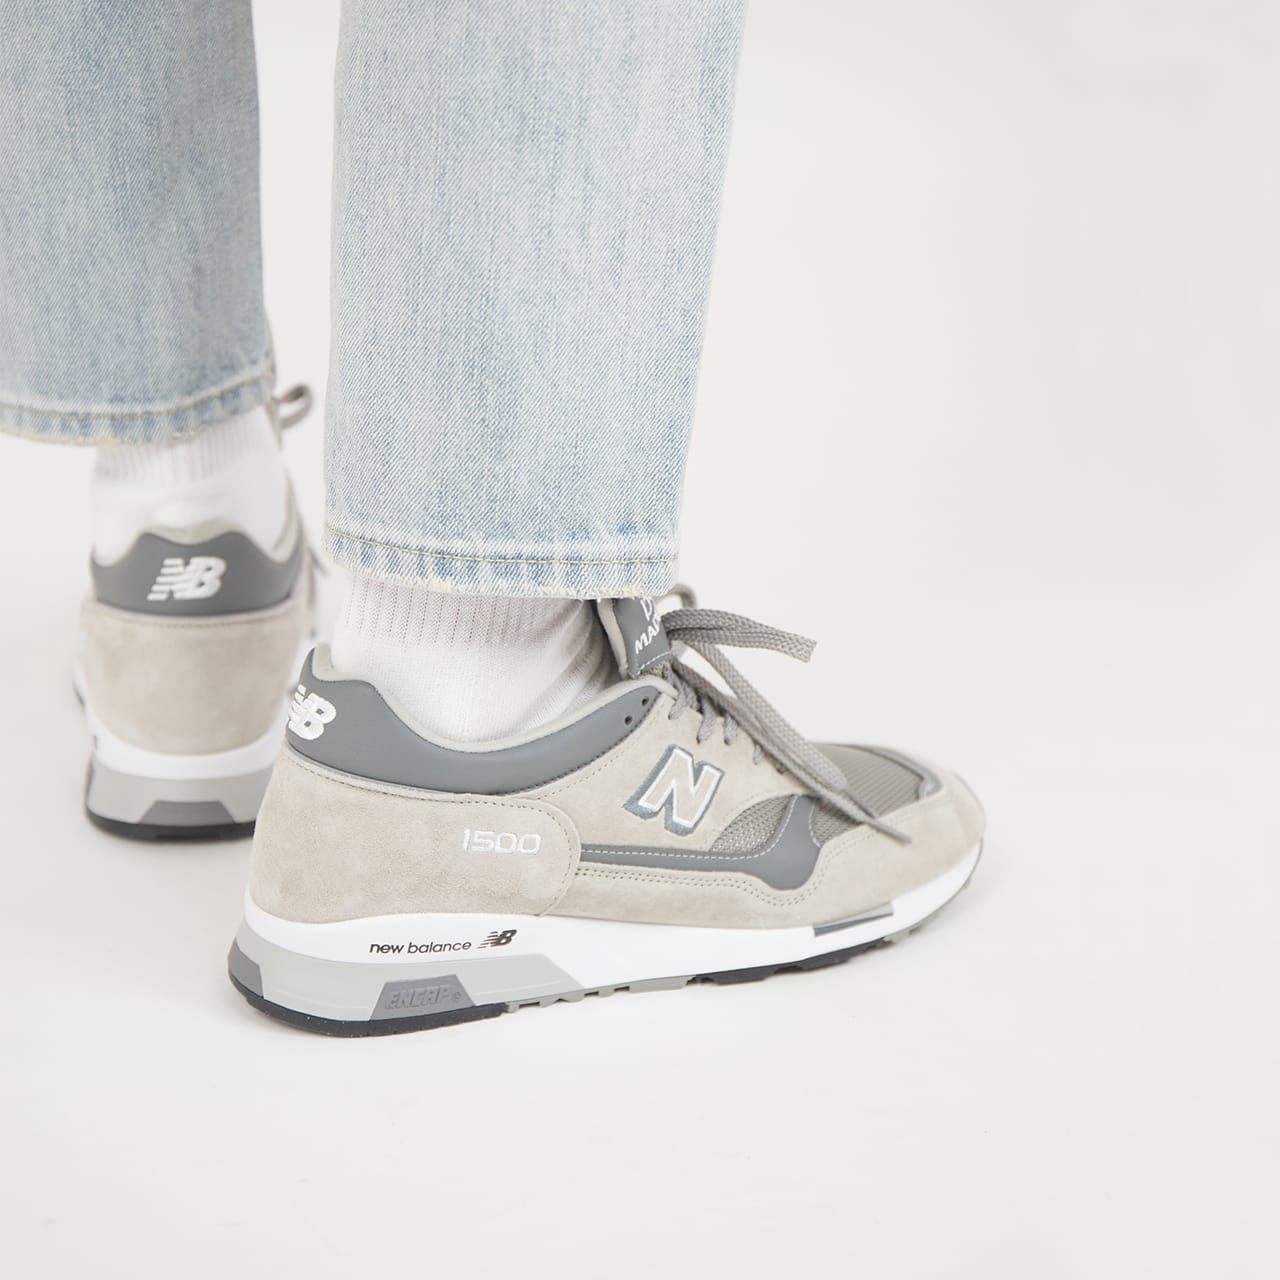 NEW BALANCE 1500 MADE IN UK – 41.5, nízké šedá